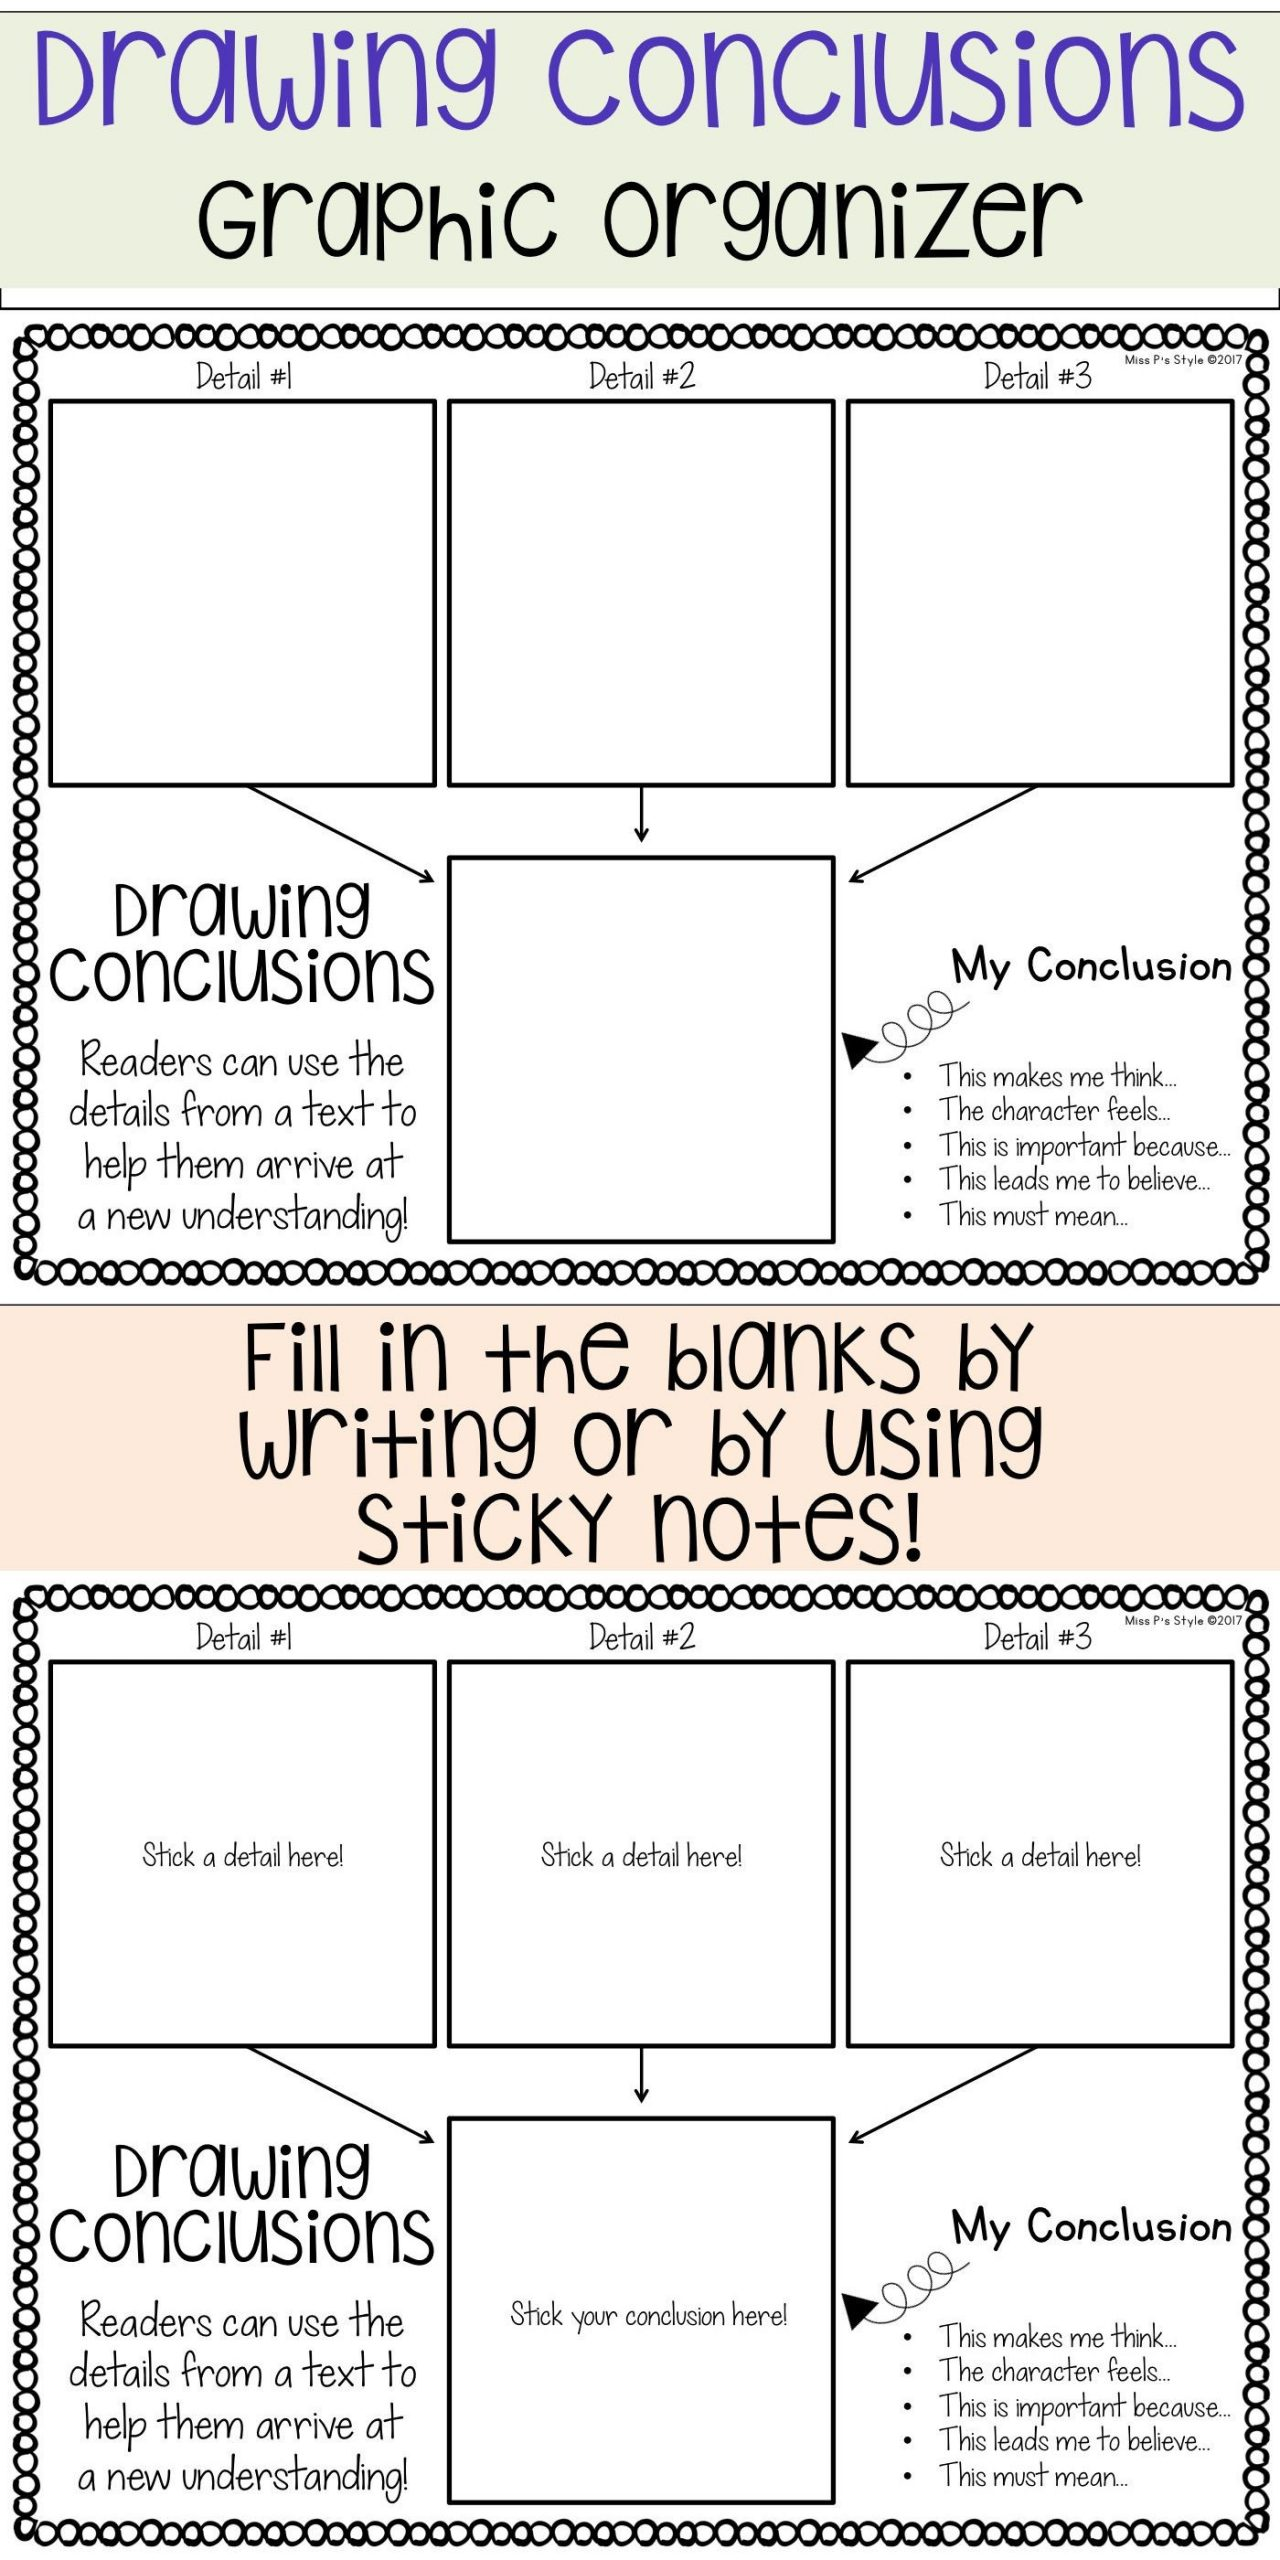 Draw Conclusions Worksheet 4th Grade Drawing Conclusions Graphic organizer